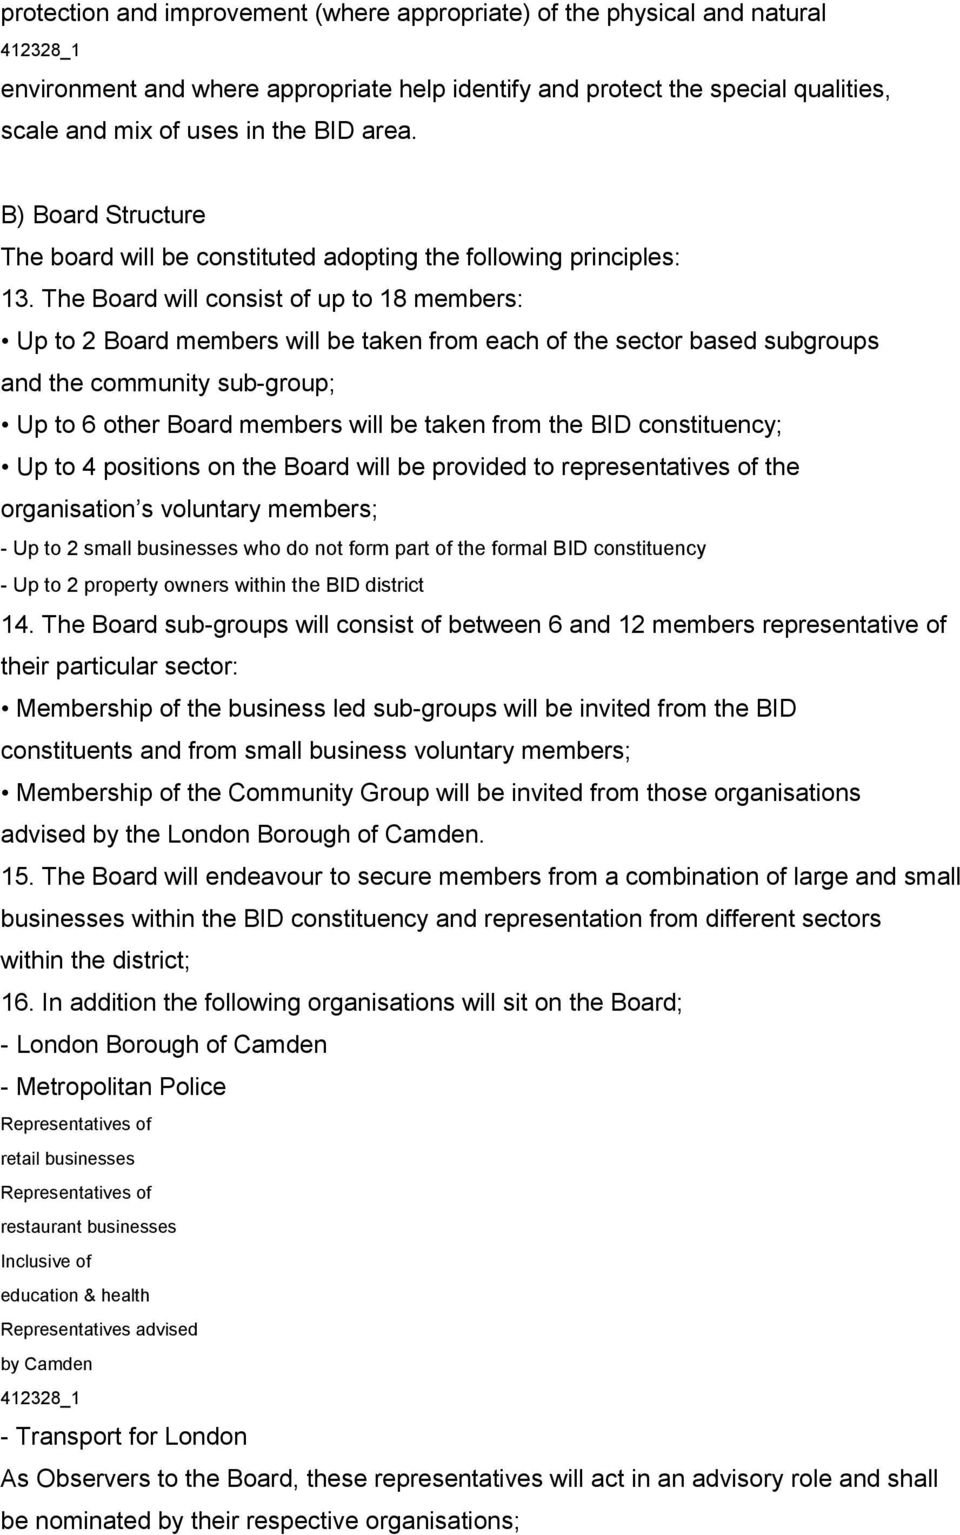 The Board will consist of up to 18 members: Up to 2 Board members will be taken from each of the sector based subgroups and the community sub-group; Up to 6 other Board members will be taken from the